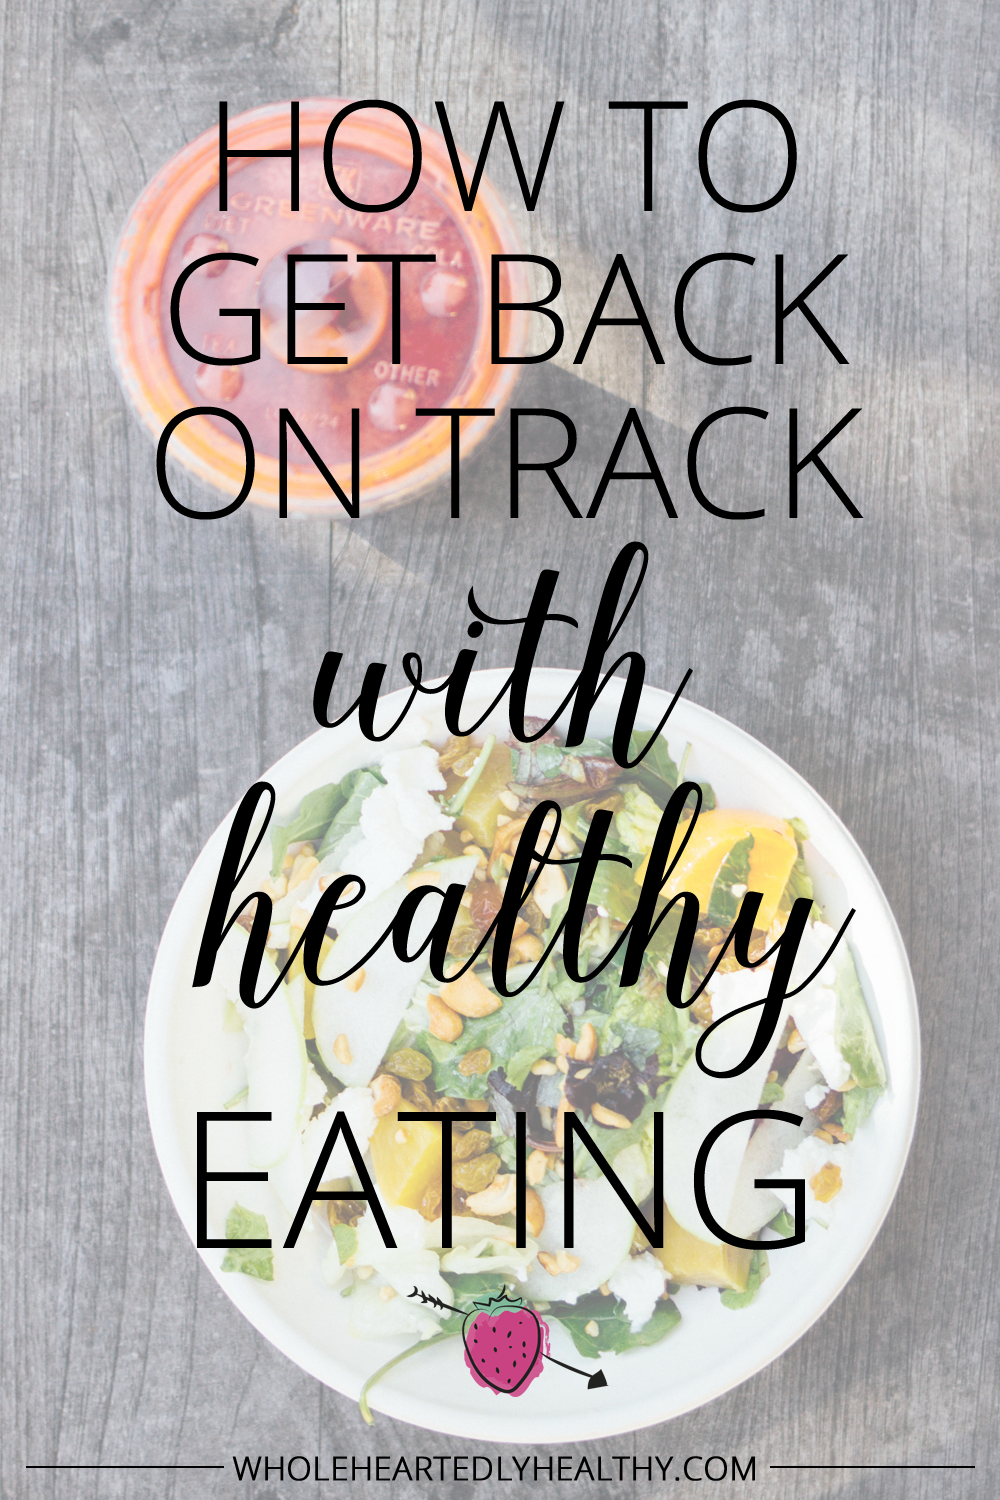 How to Get Back to Healthy Eating After Overindulging